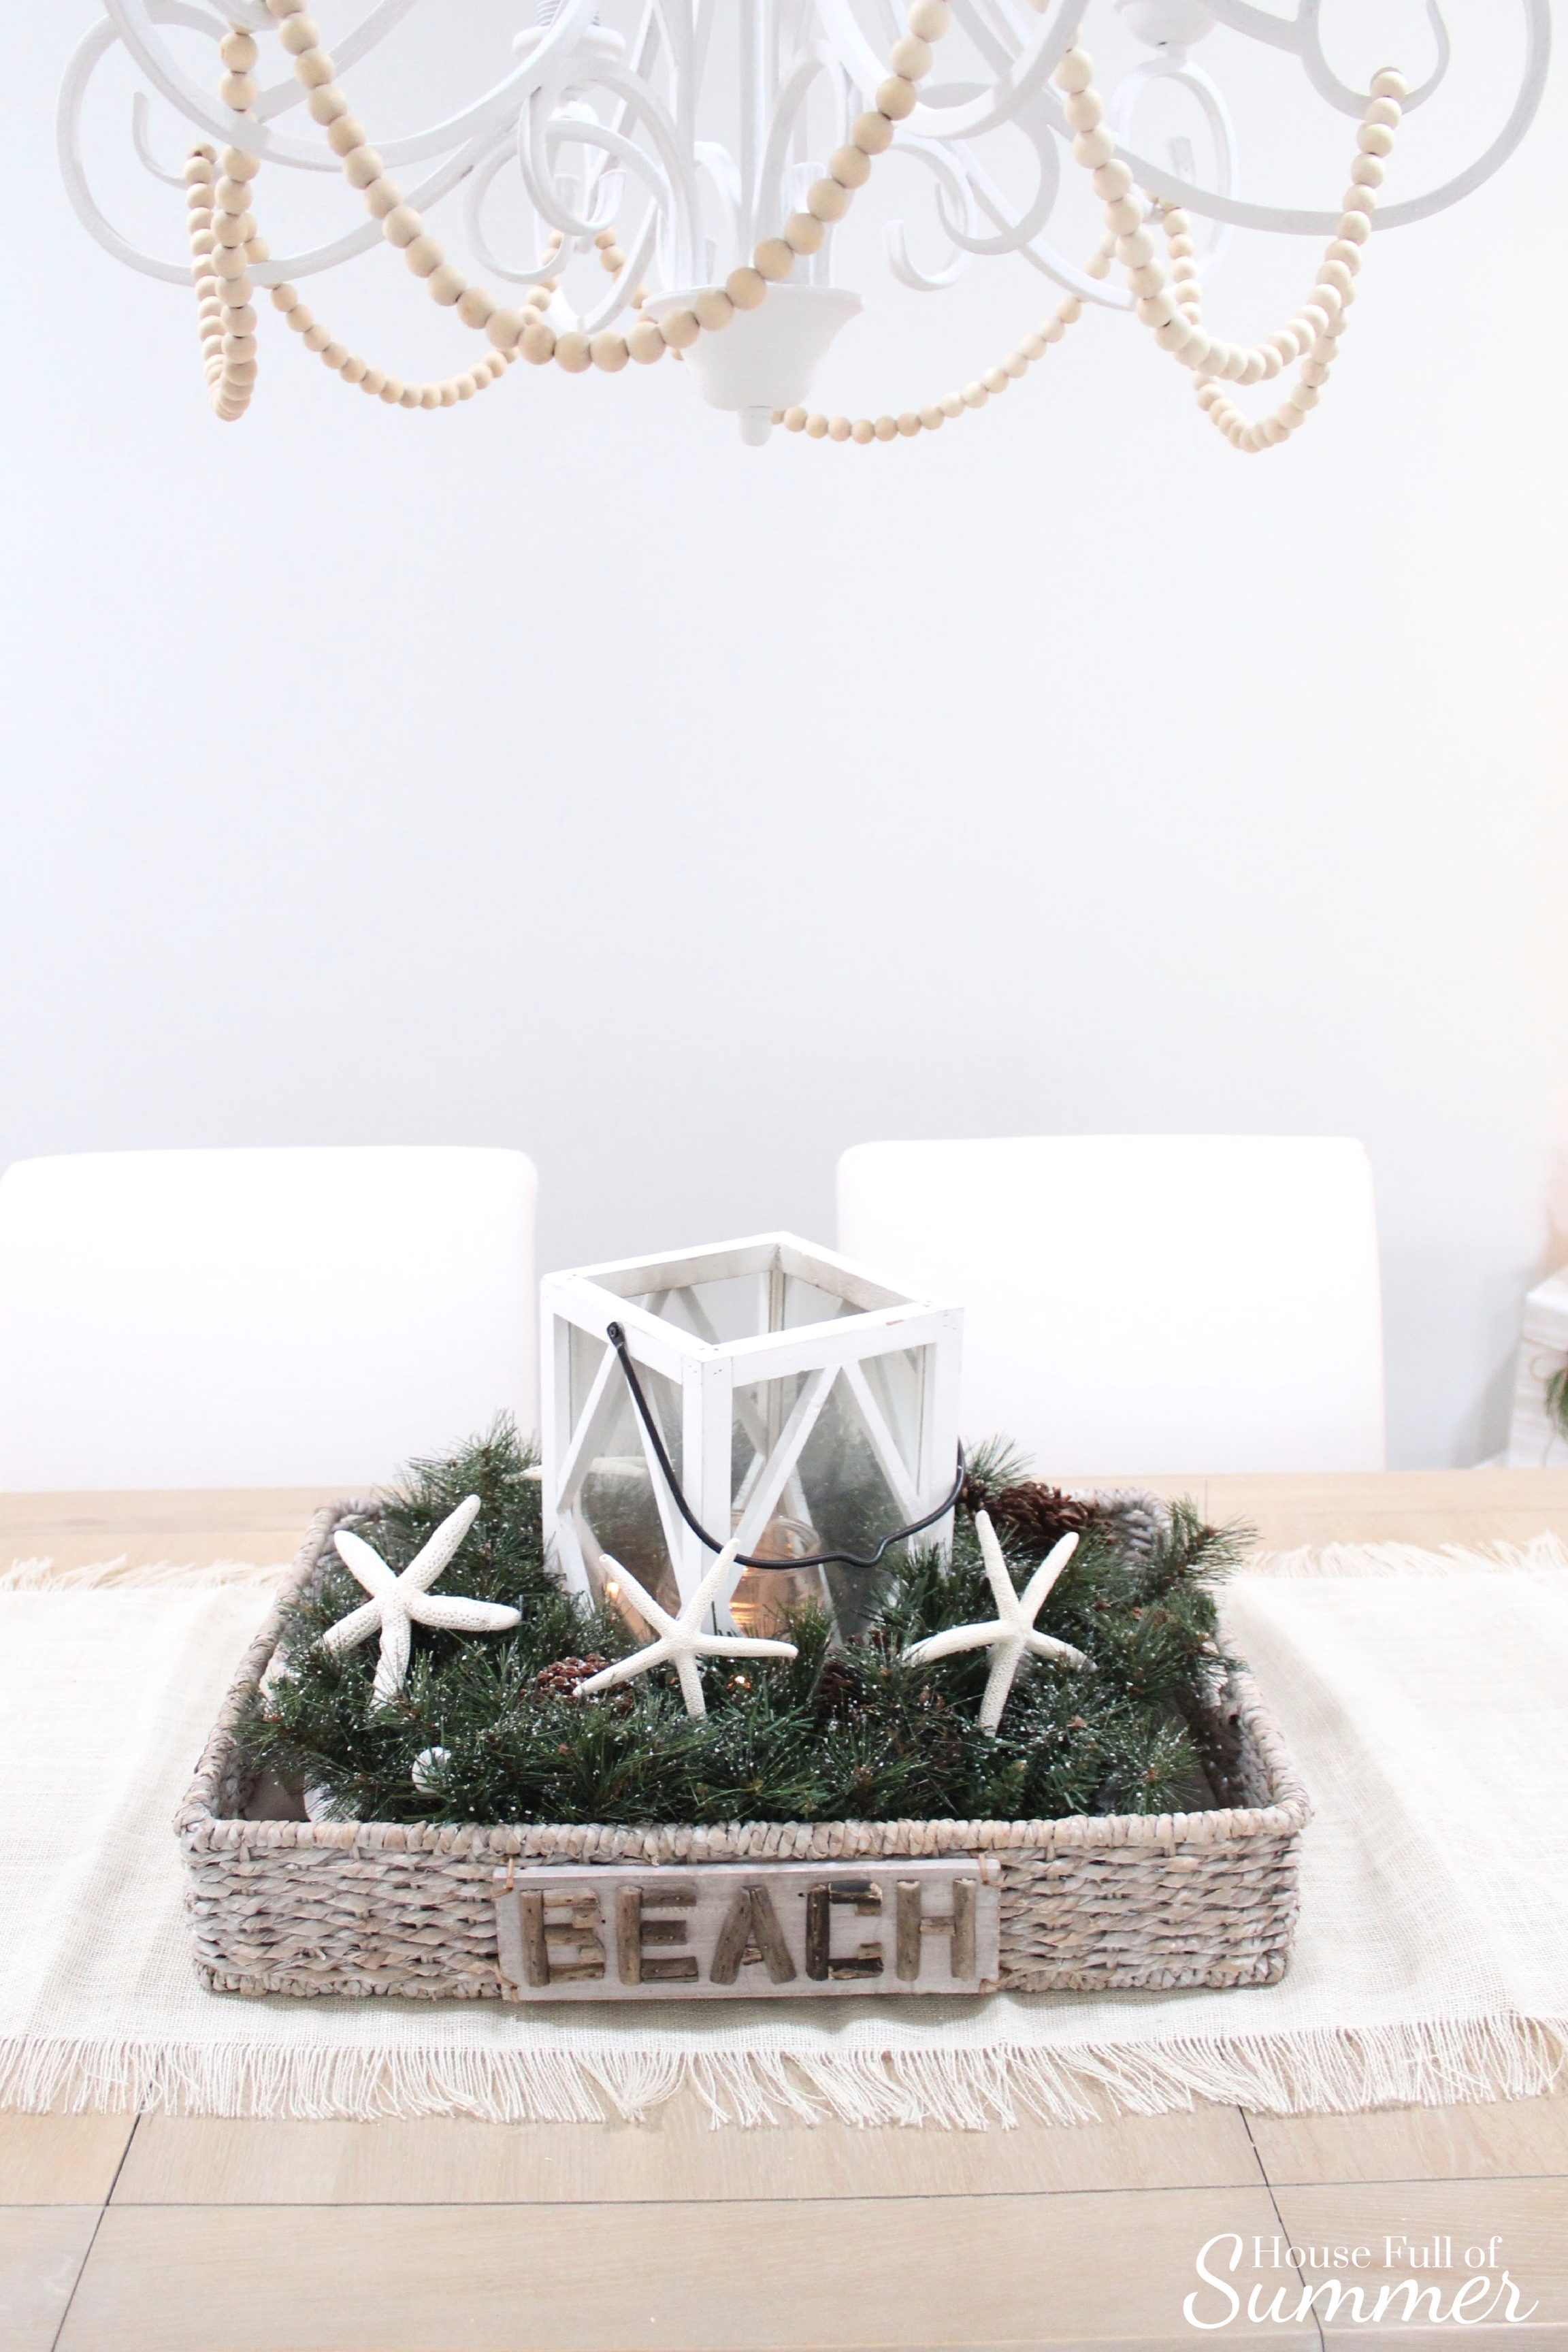 Christmas Home Tour | House Full of Summer blog hop - Cheerful Christmas Home Tourcoastal christmas neutral christmas decor, holiday home tour, florida christmas, dining room centerpiece, table decor